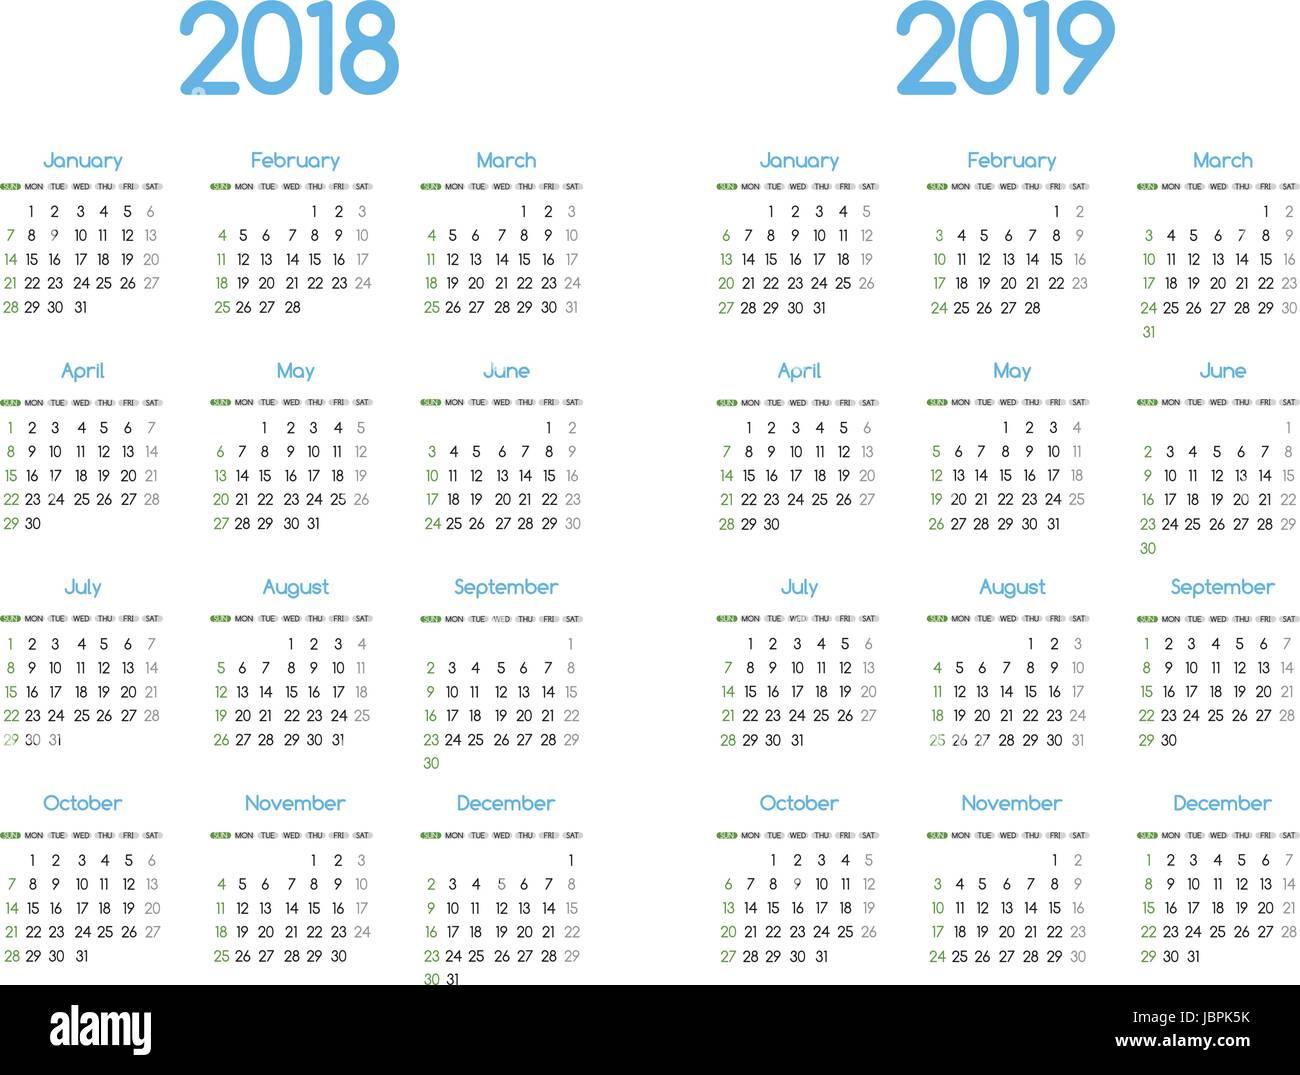 new year 2018 and 2019 vector calendar modern simple design with round san serif fontholiday event plannerweek starts sunday